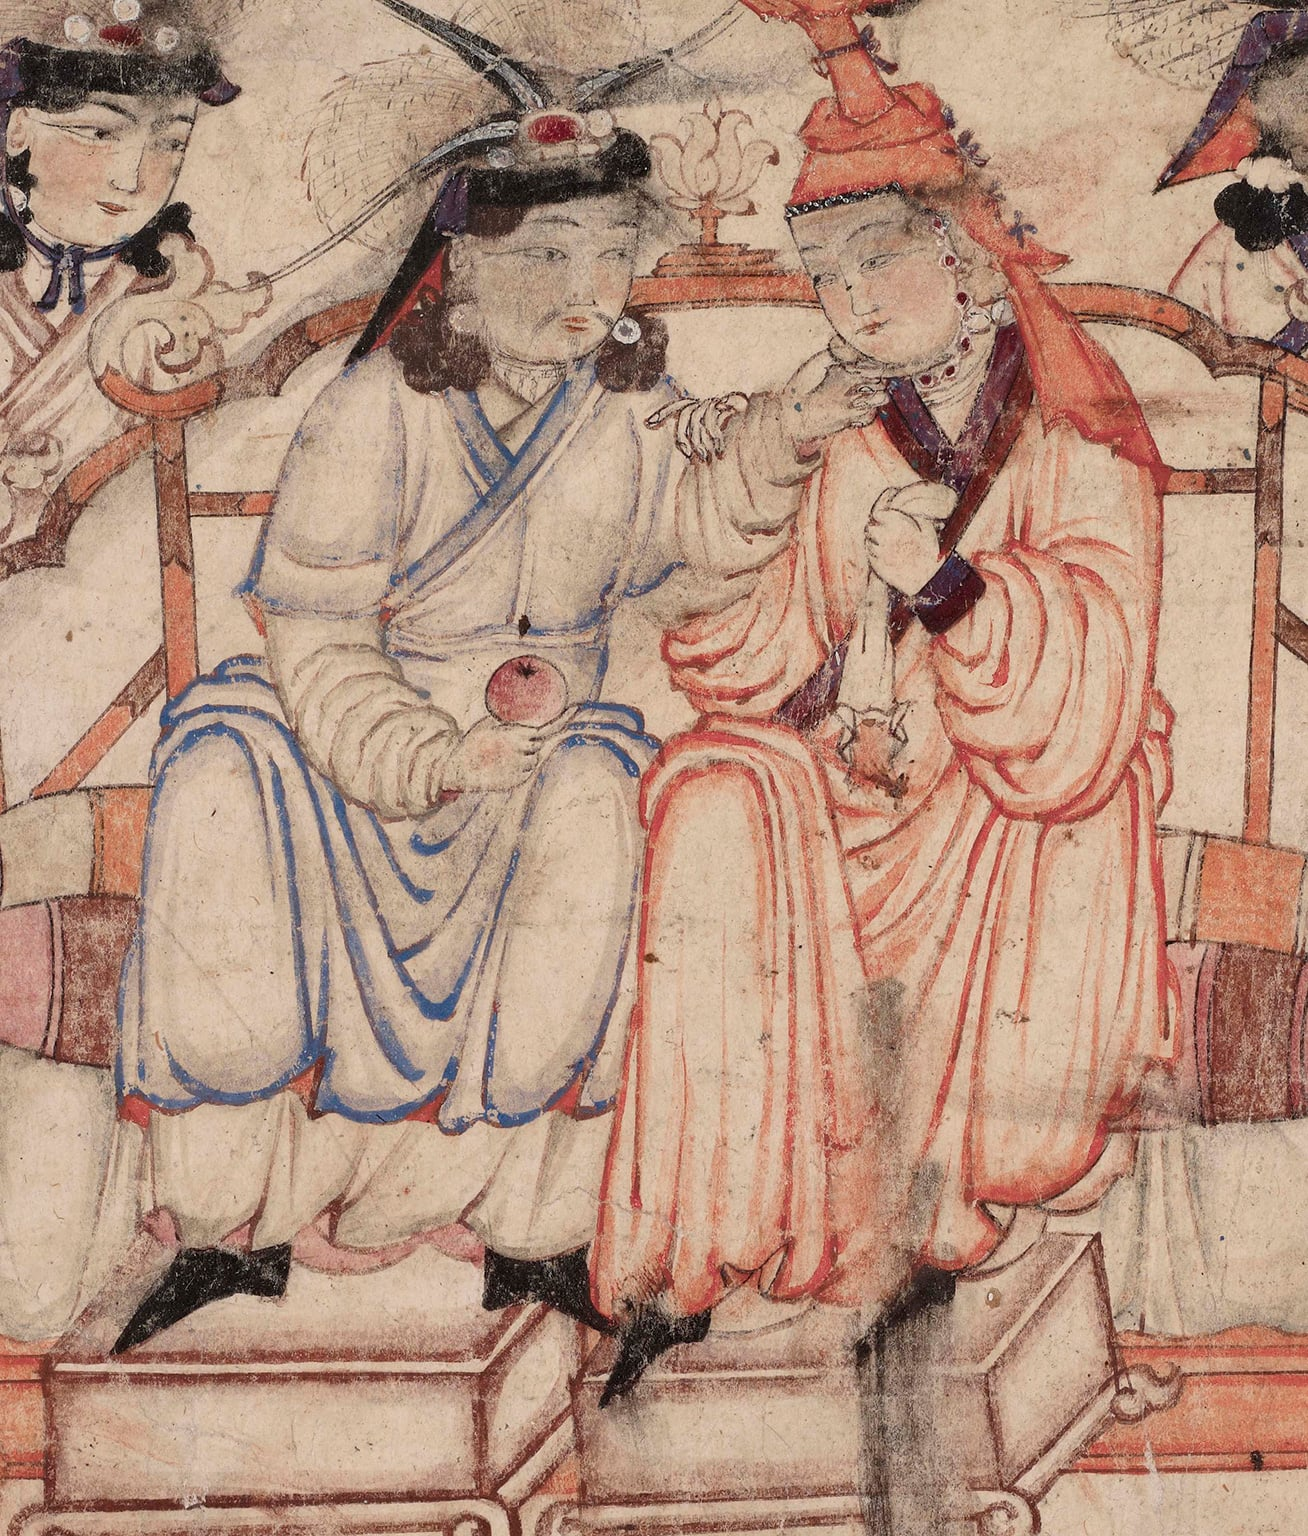 Enthronement scene (detail), from the Diez Albums Iran, possibly Tabriz, early 14th century